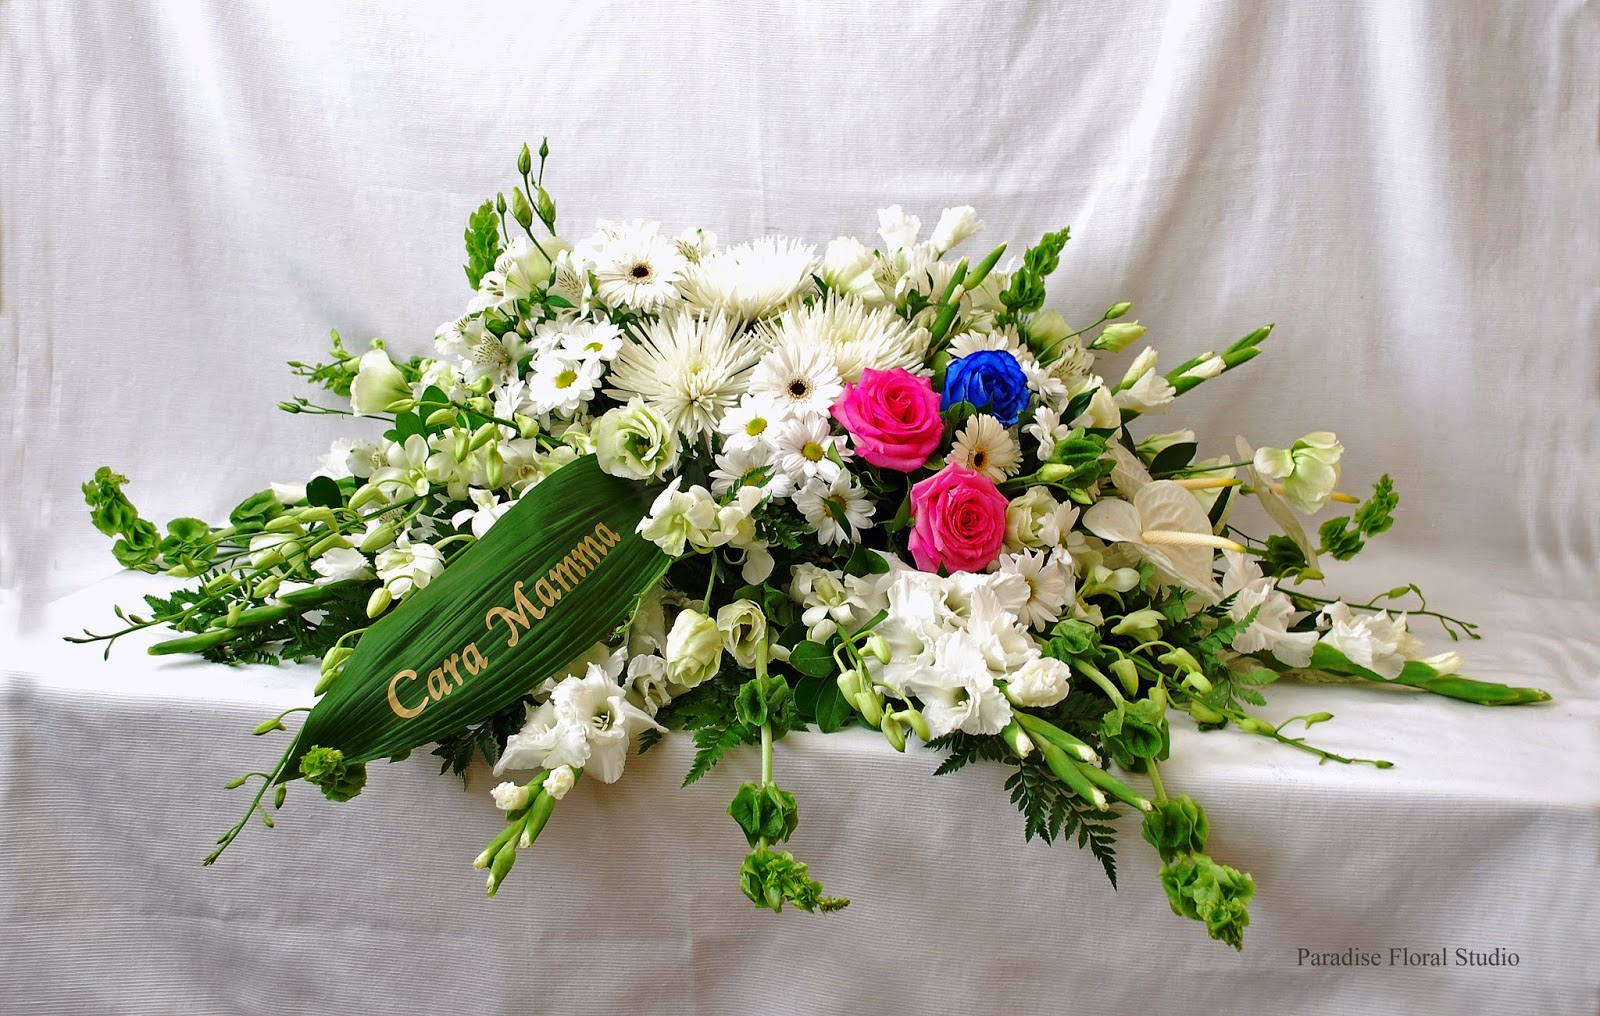 Paradise floral studio funeralsympathy sympathy flowers can vary from traditional shapes to vase arrangements to potted plants below are a few traditional shapes click image to enlarge and view izmirmasajfo